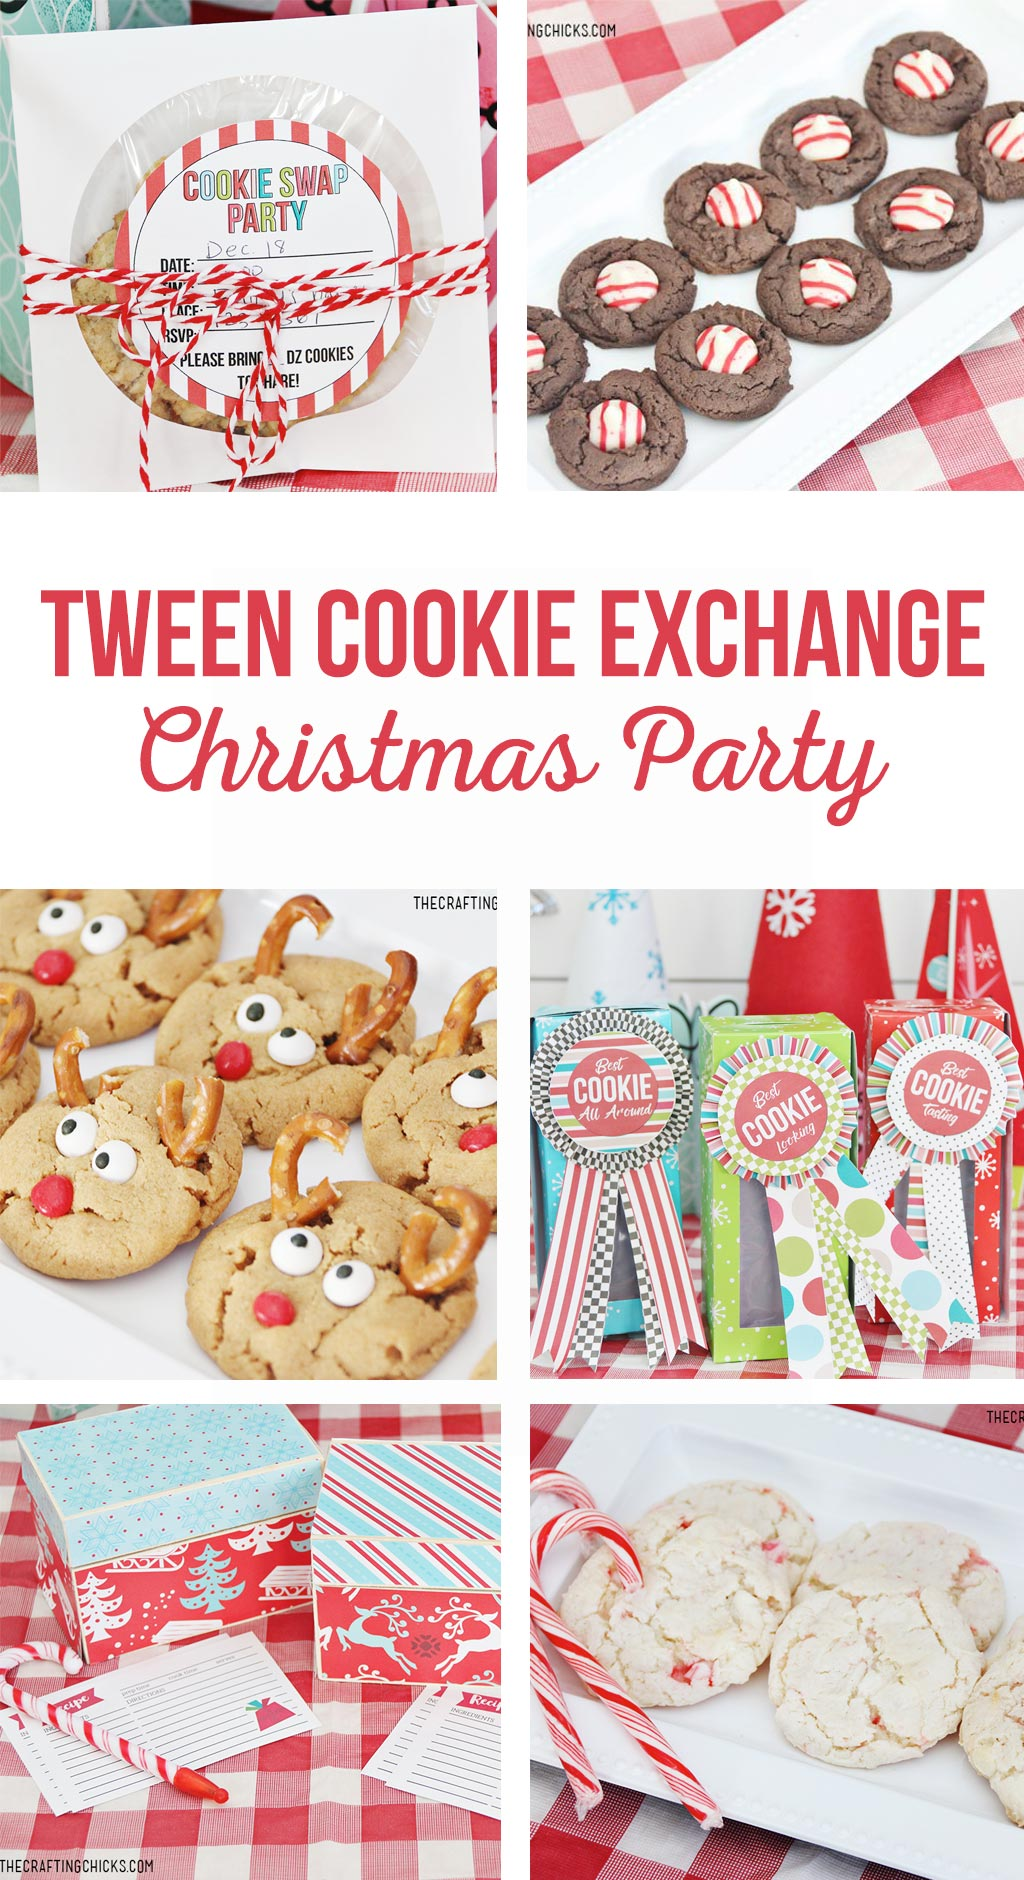 Tween Cookie Exchange Christmas Party - The Crafting Chicks